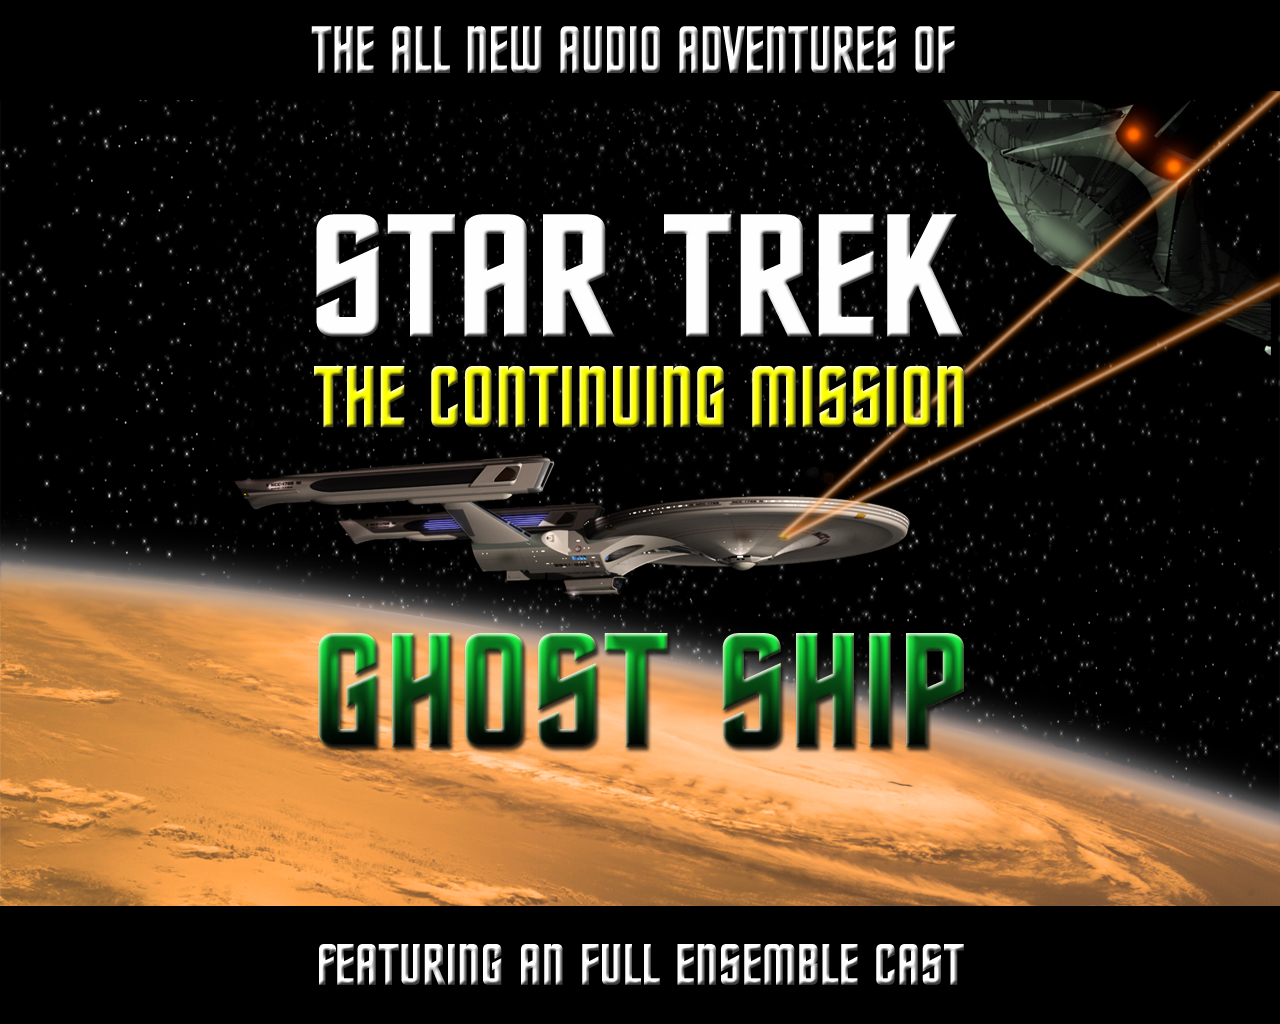 Episode 1: Ghost Ship